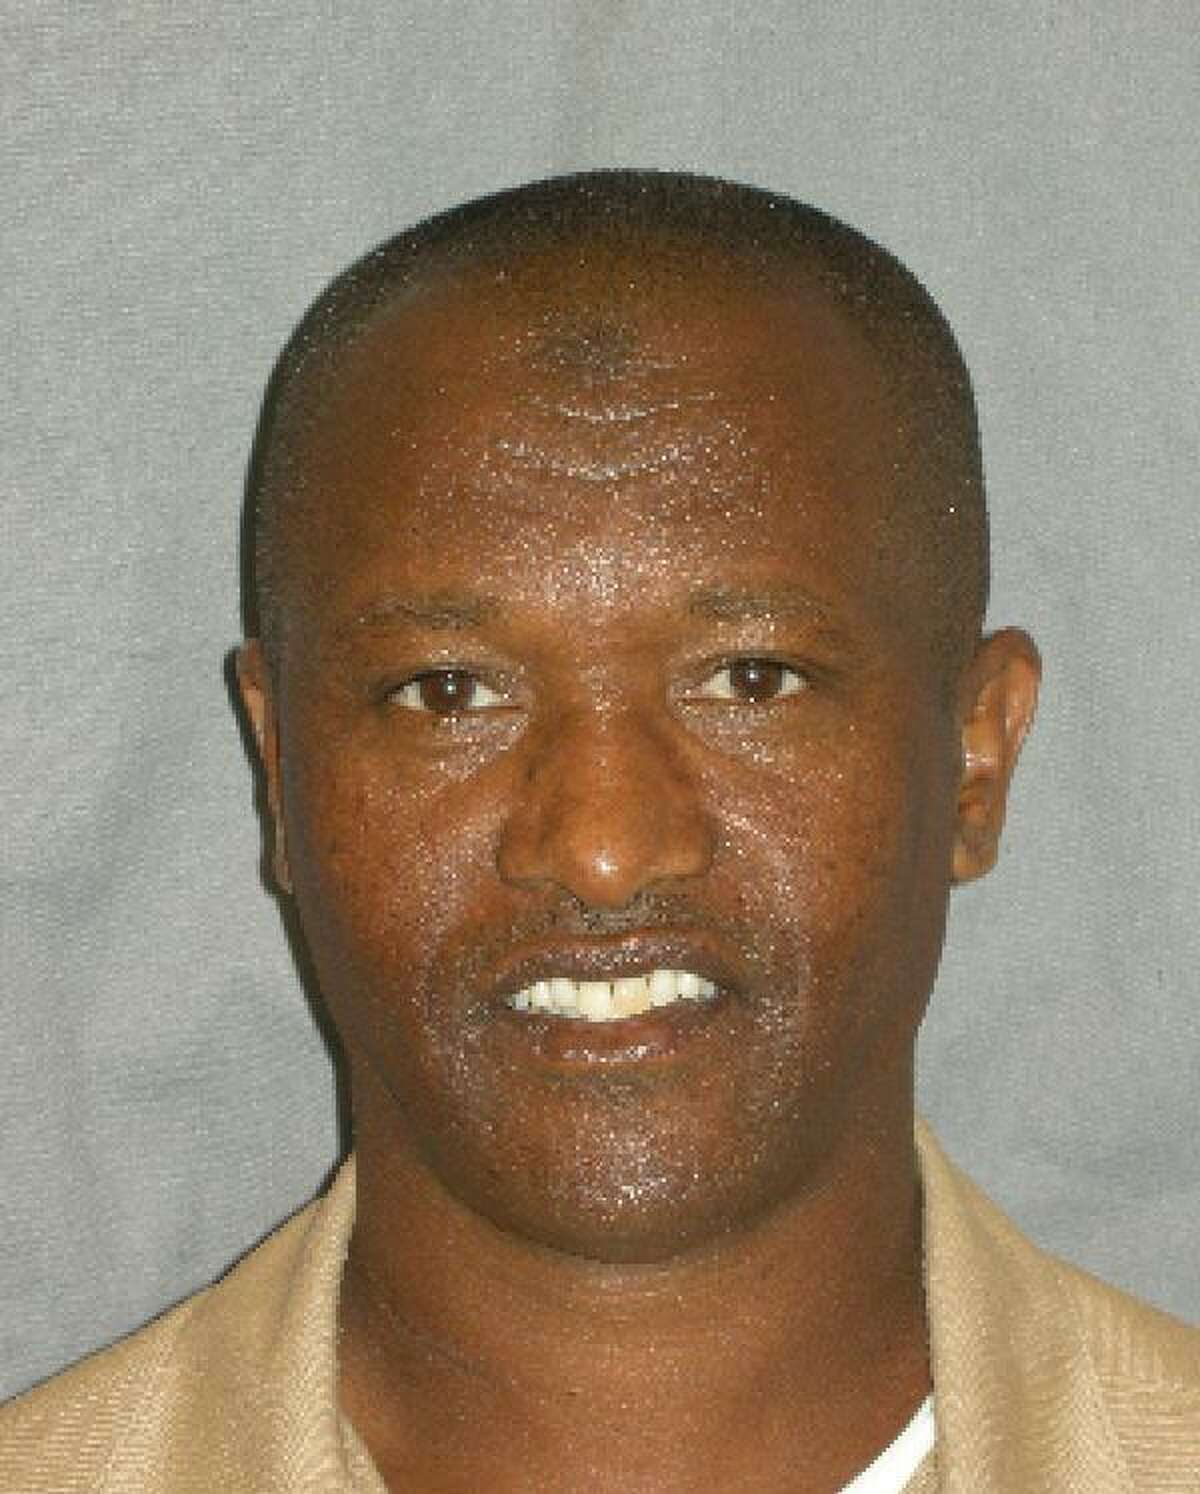 Galmesa Elemo, pictured in a Department of Corrections photo.